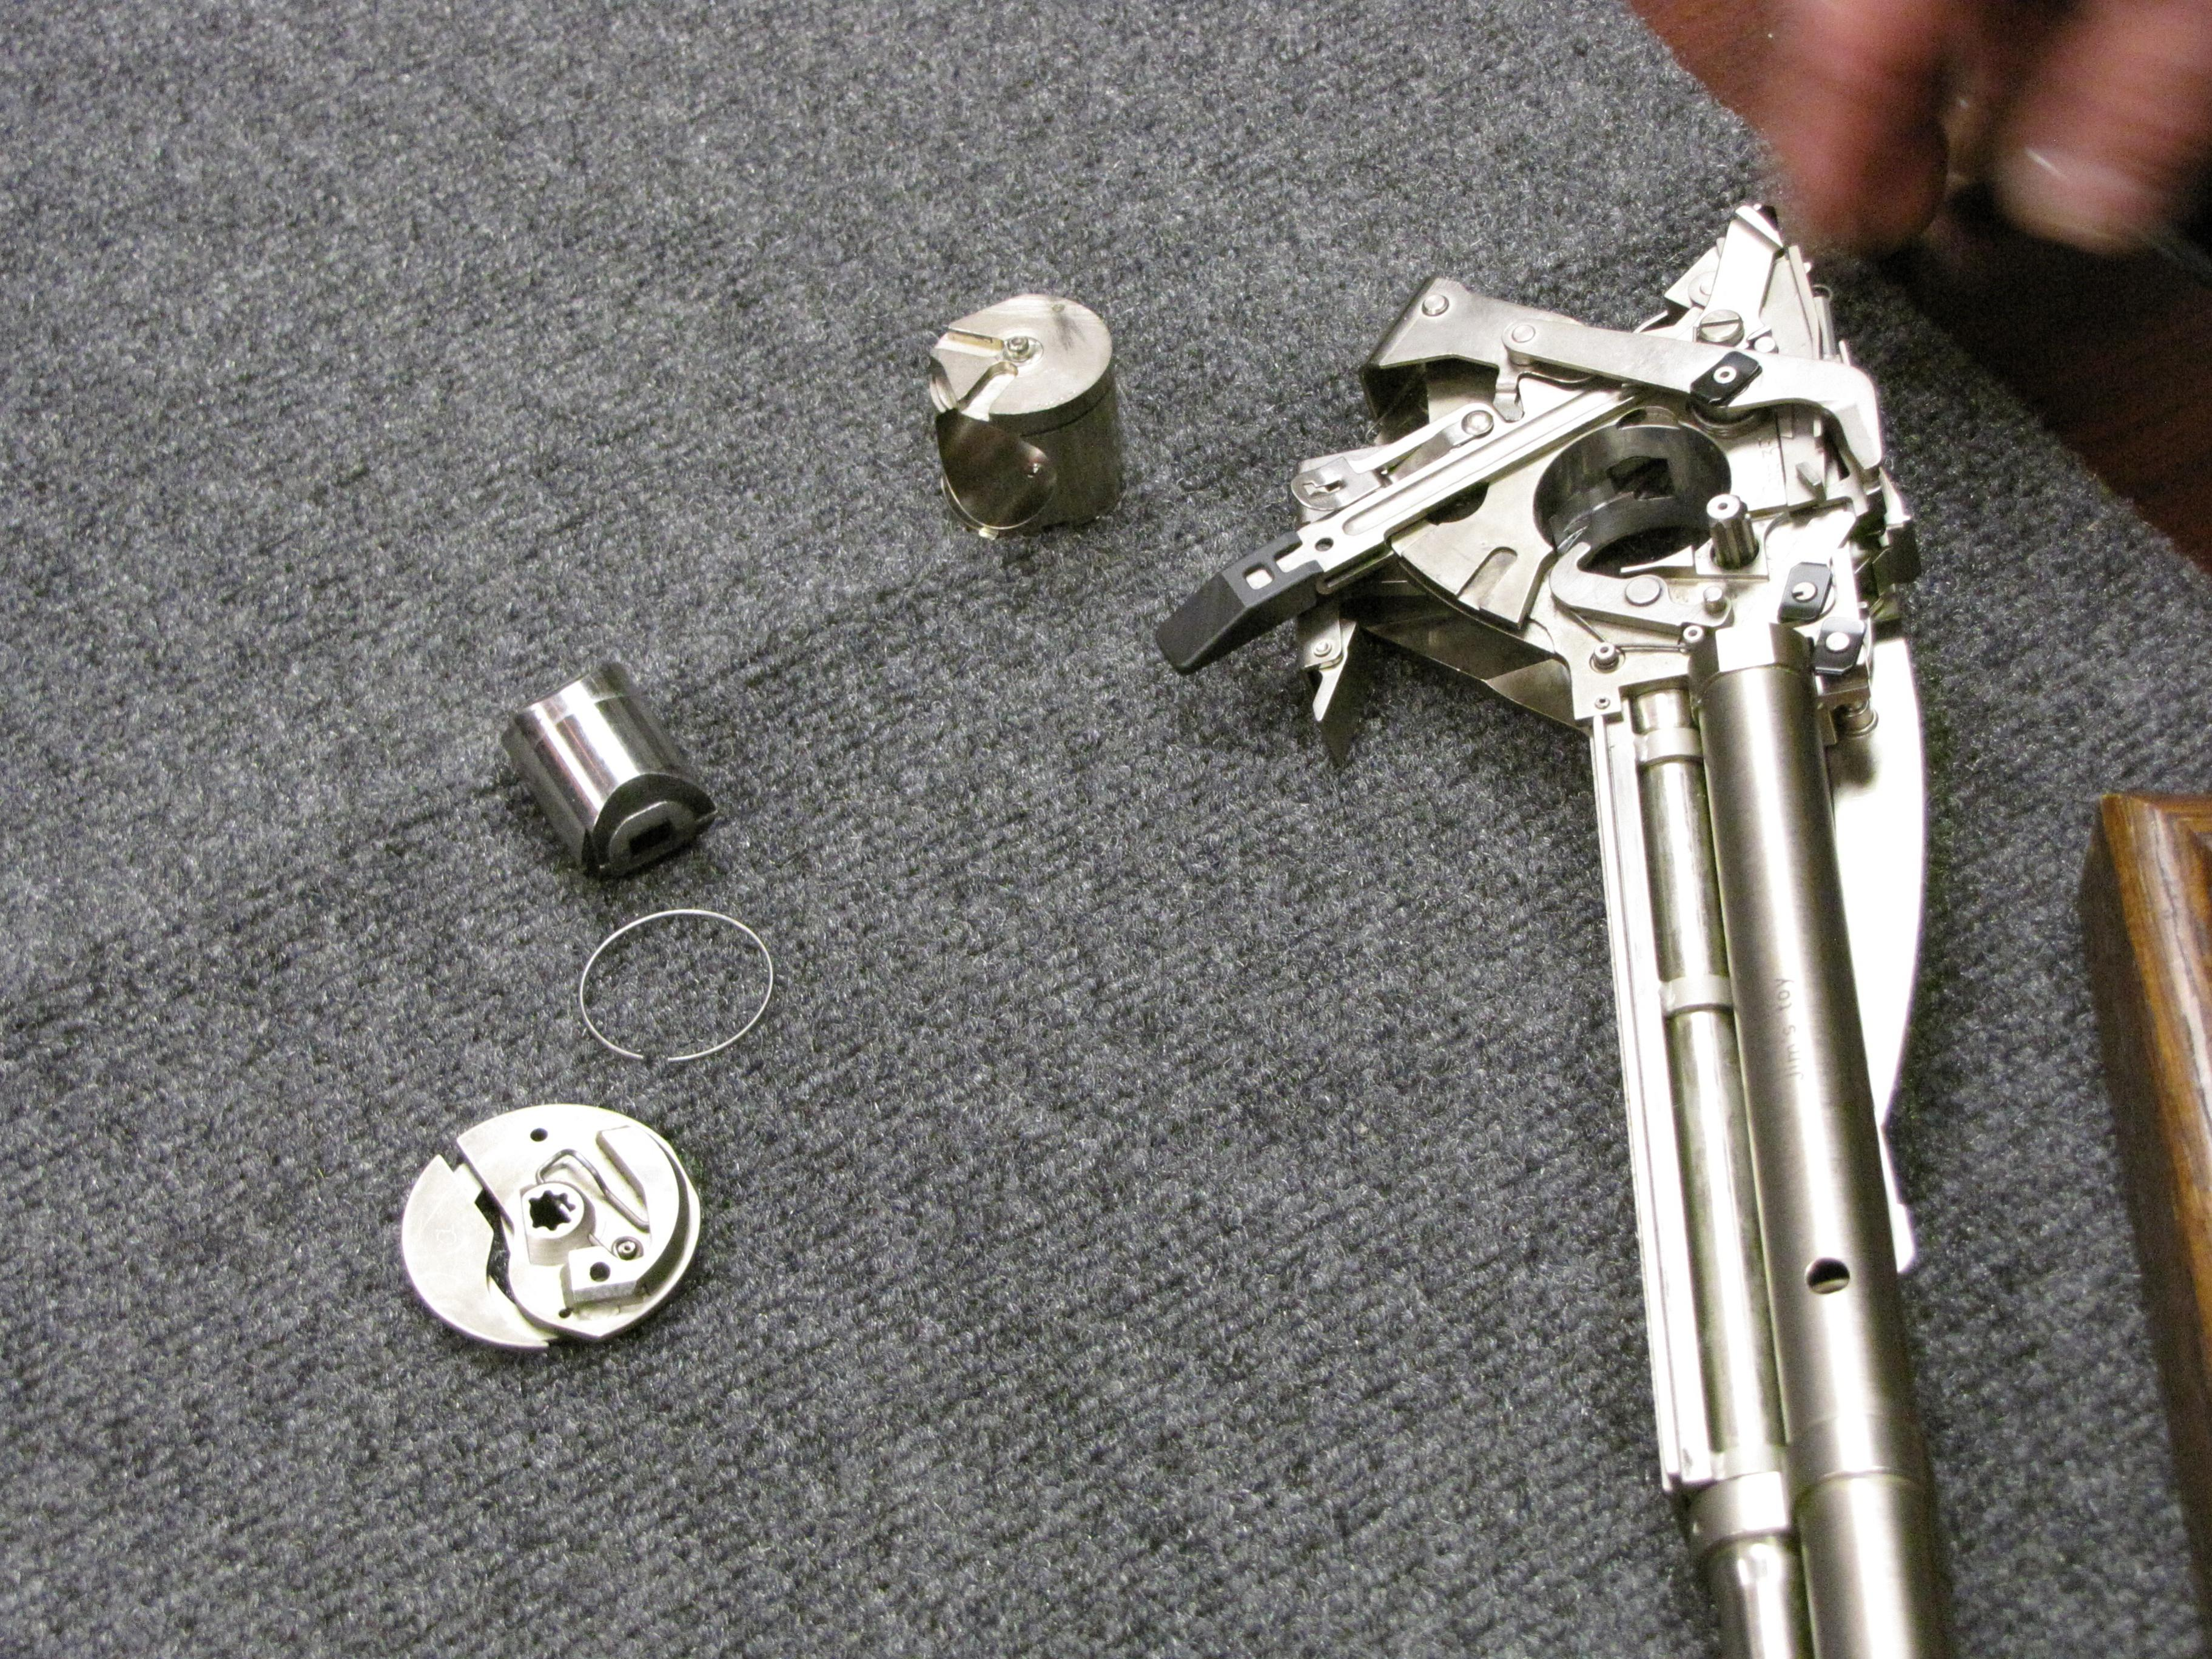 HK G11 Disassembly & How It Works, by The Armourer's Bench-091.jpg